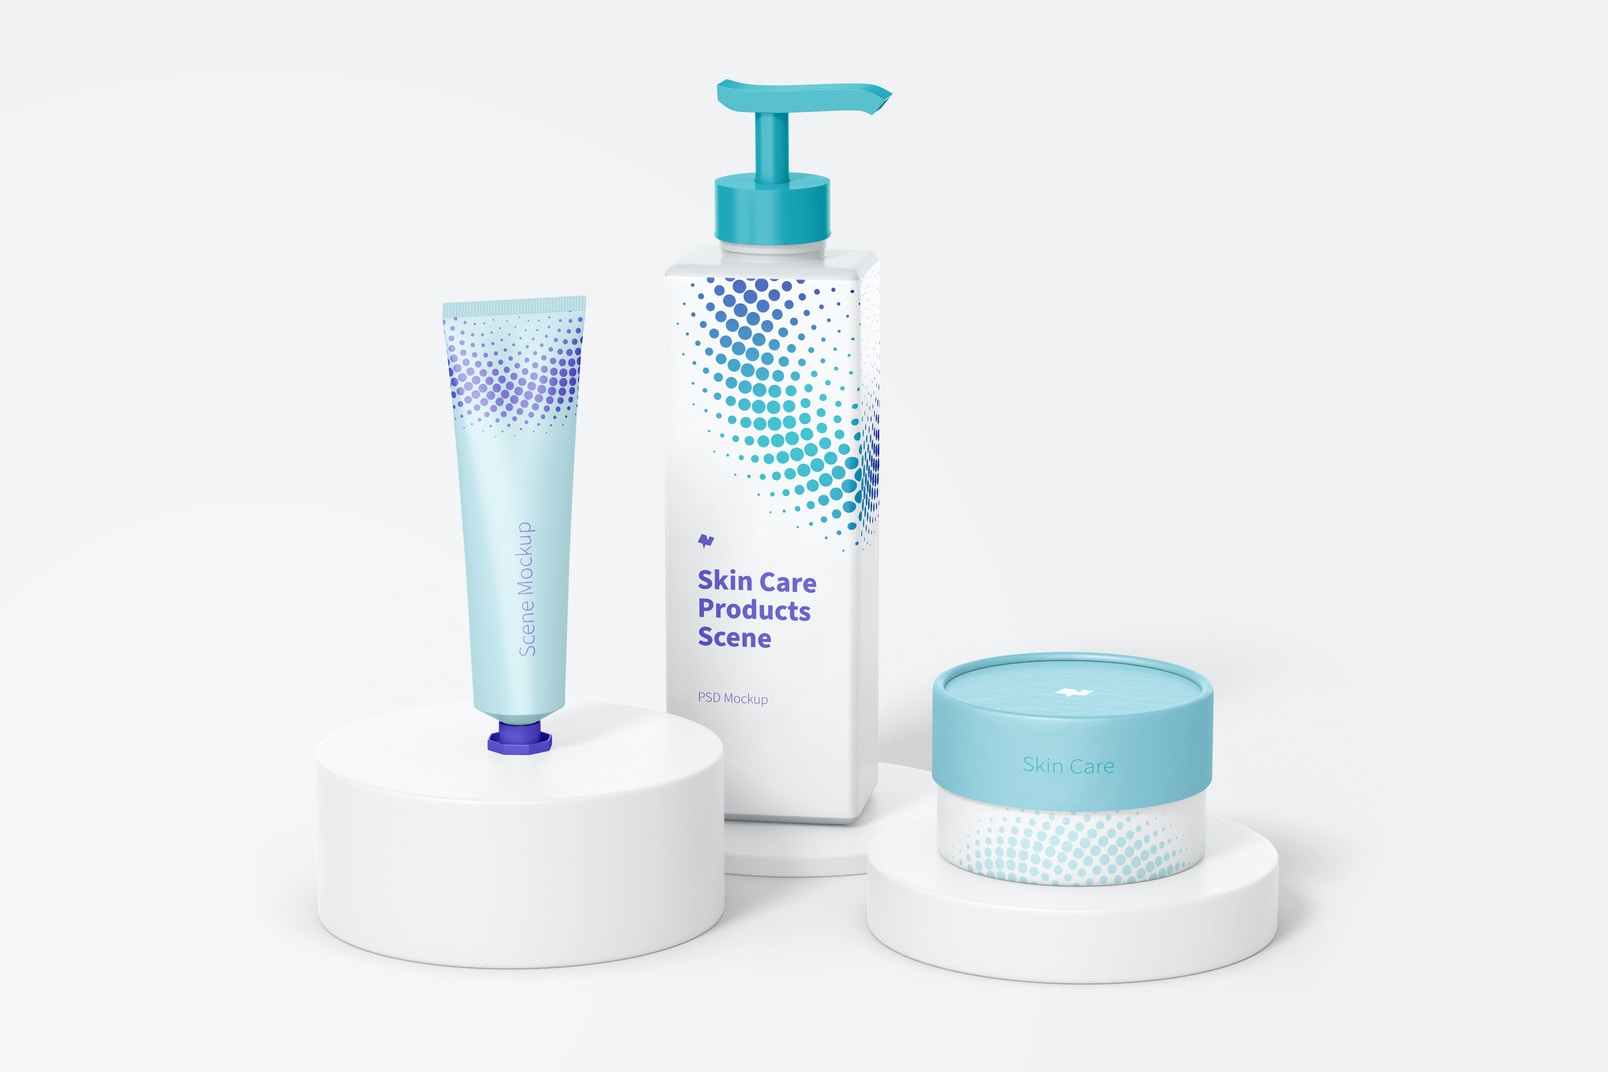 Skin Care Products Scene Mockup, Front Side